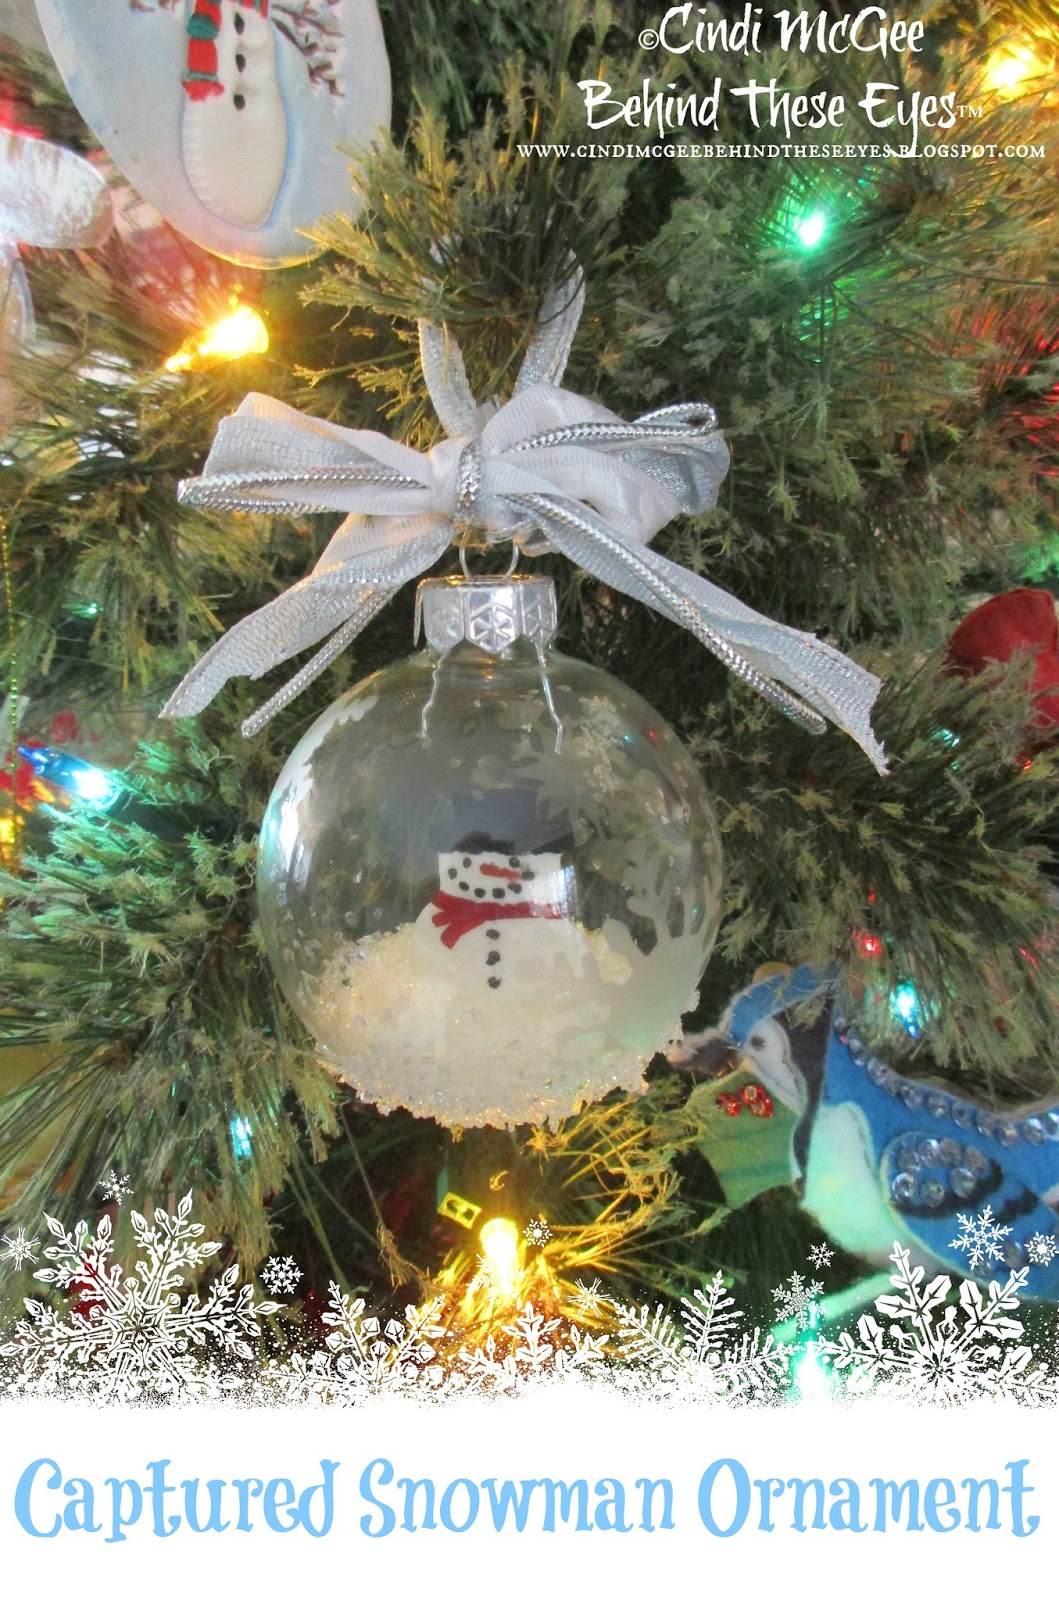 Captured Snowman Ornament - Cindi Bisson McGee